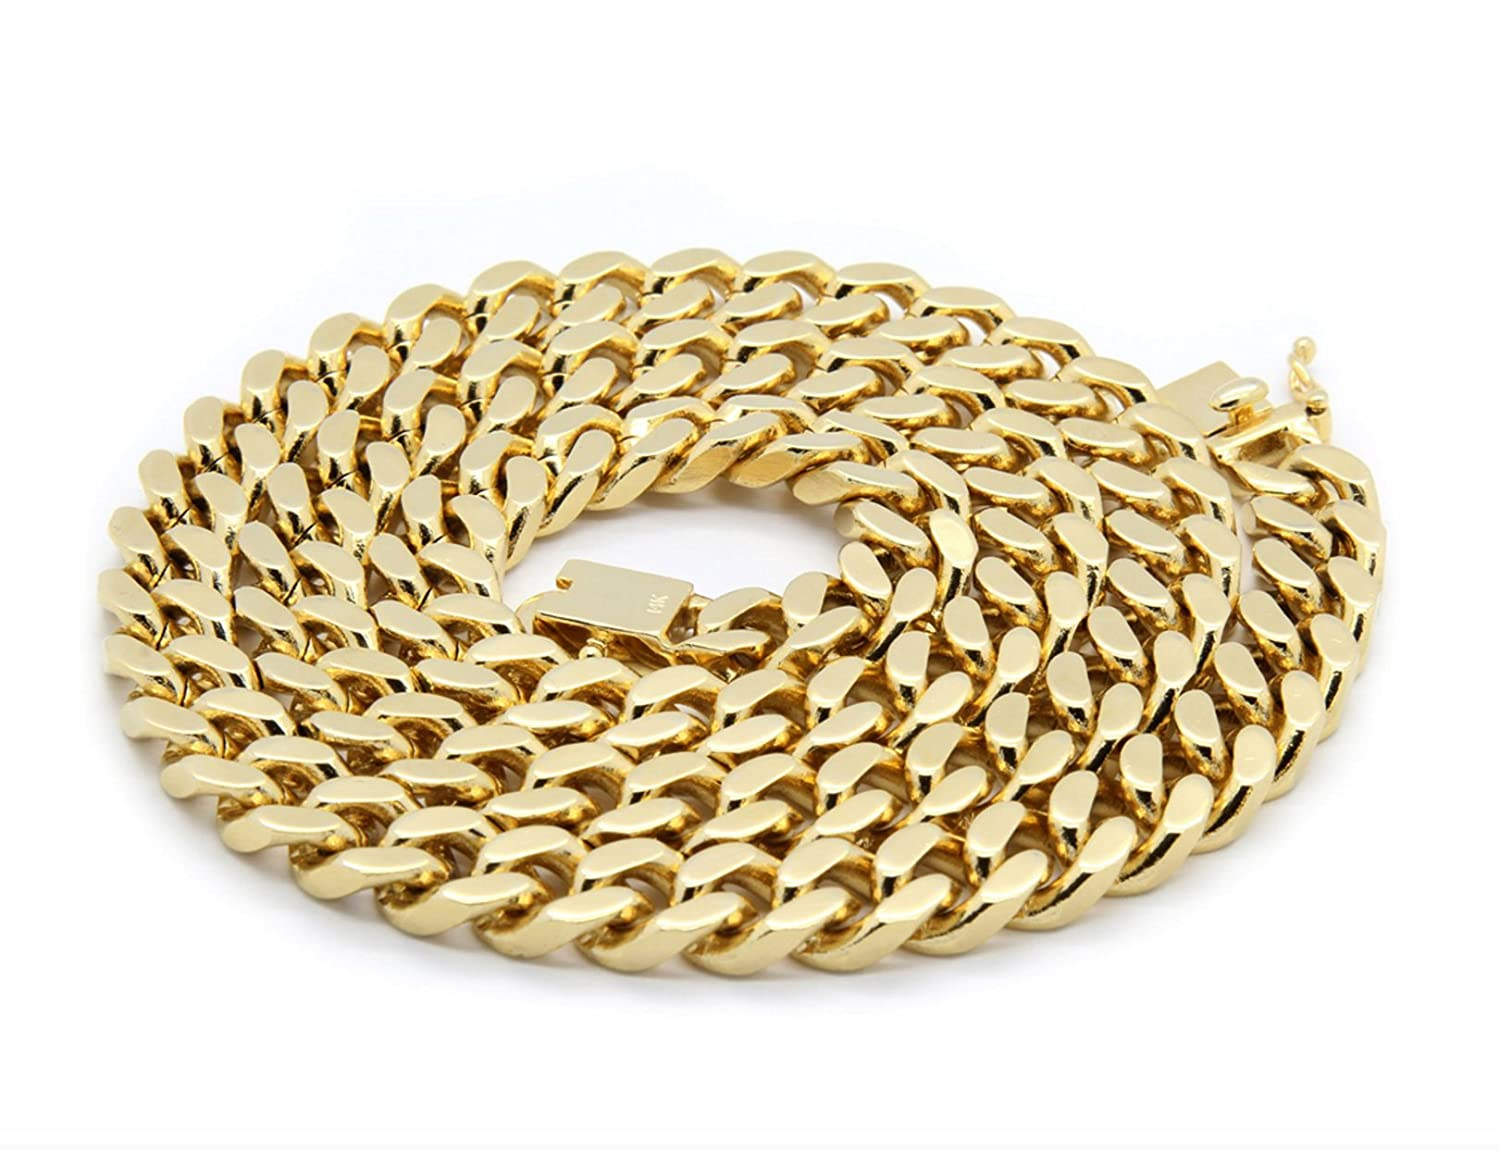 71395cd1cf5d9 14K Gold Chain Necklace for men 11MM. Miami Cuban Link w/ Real Solid ...